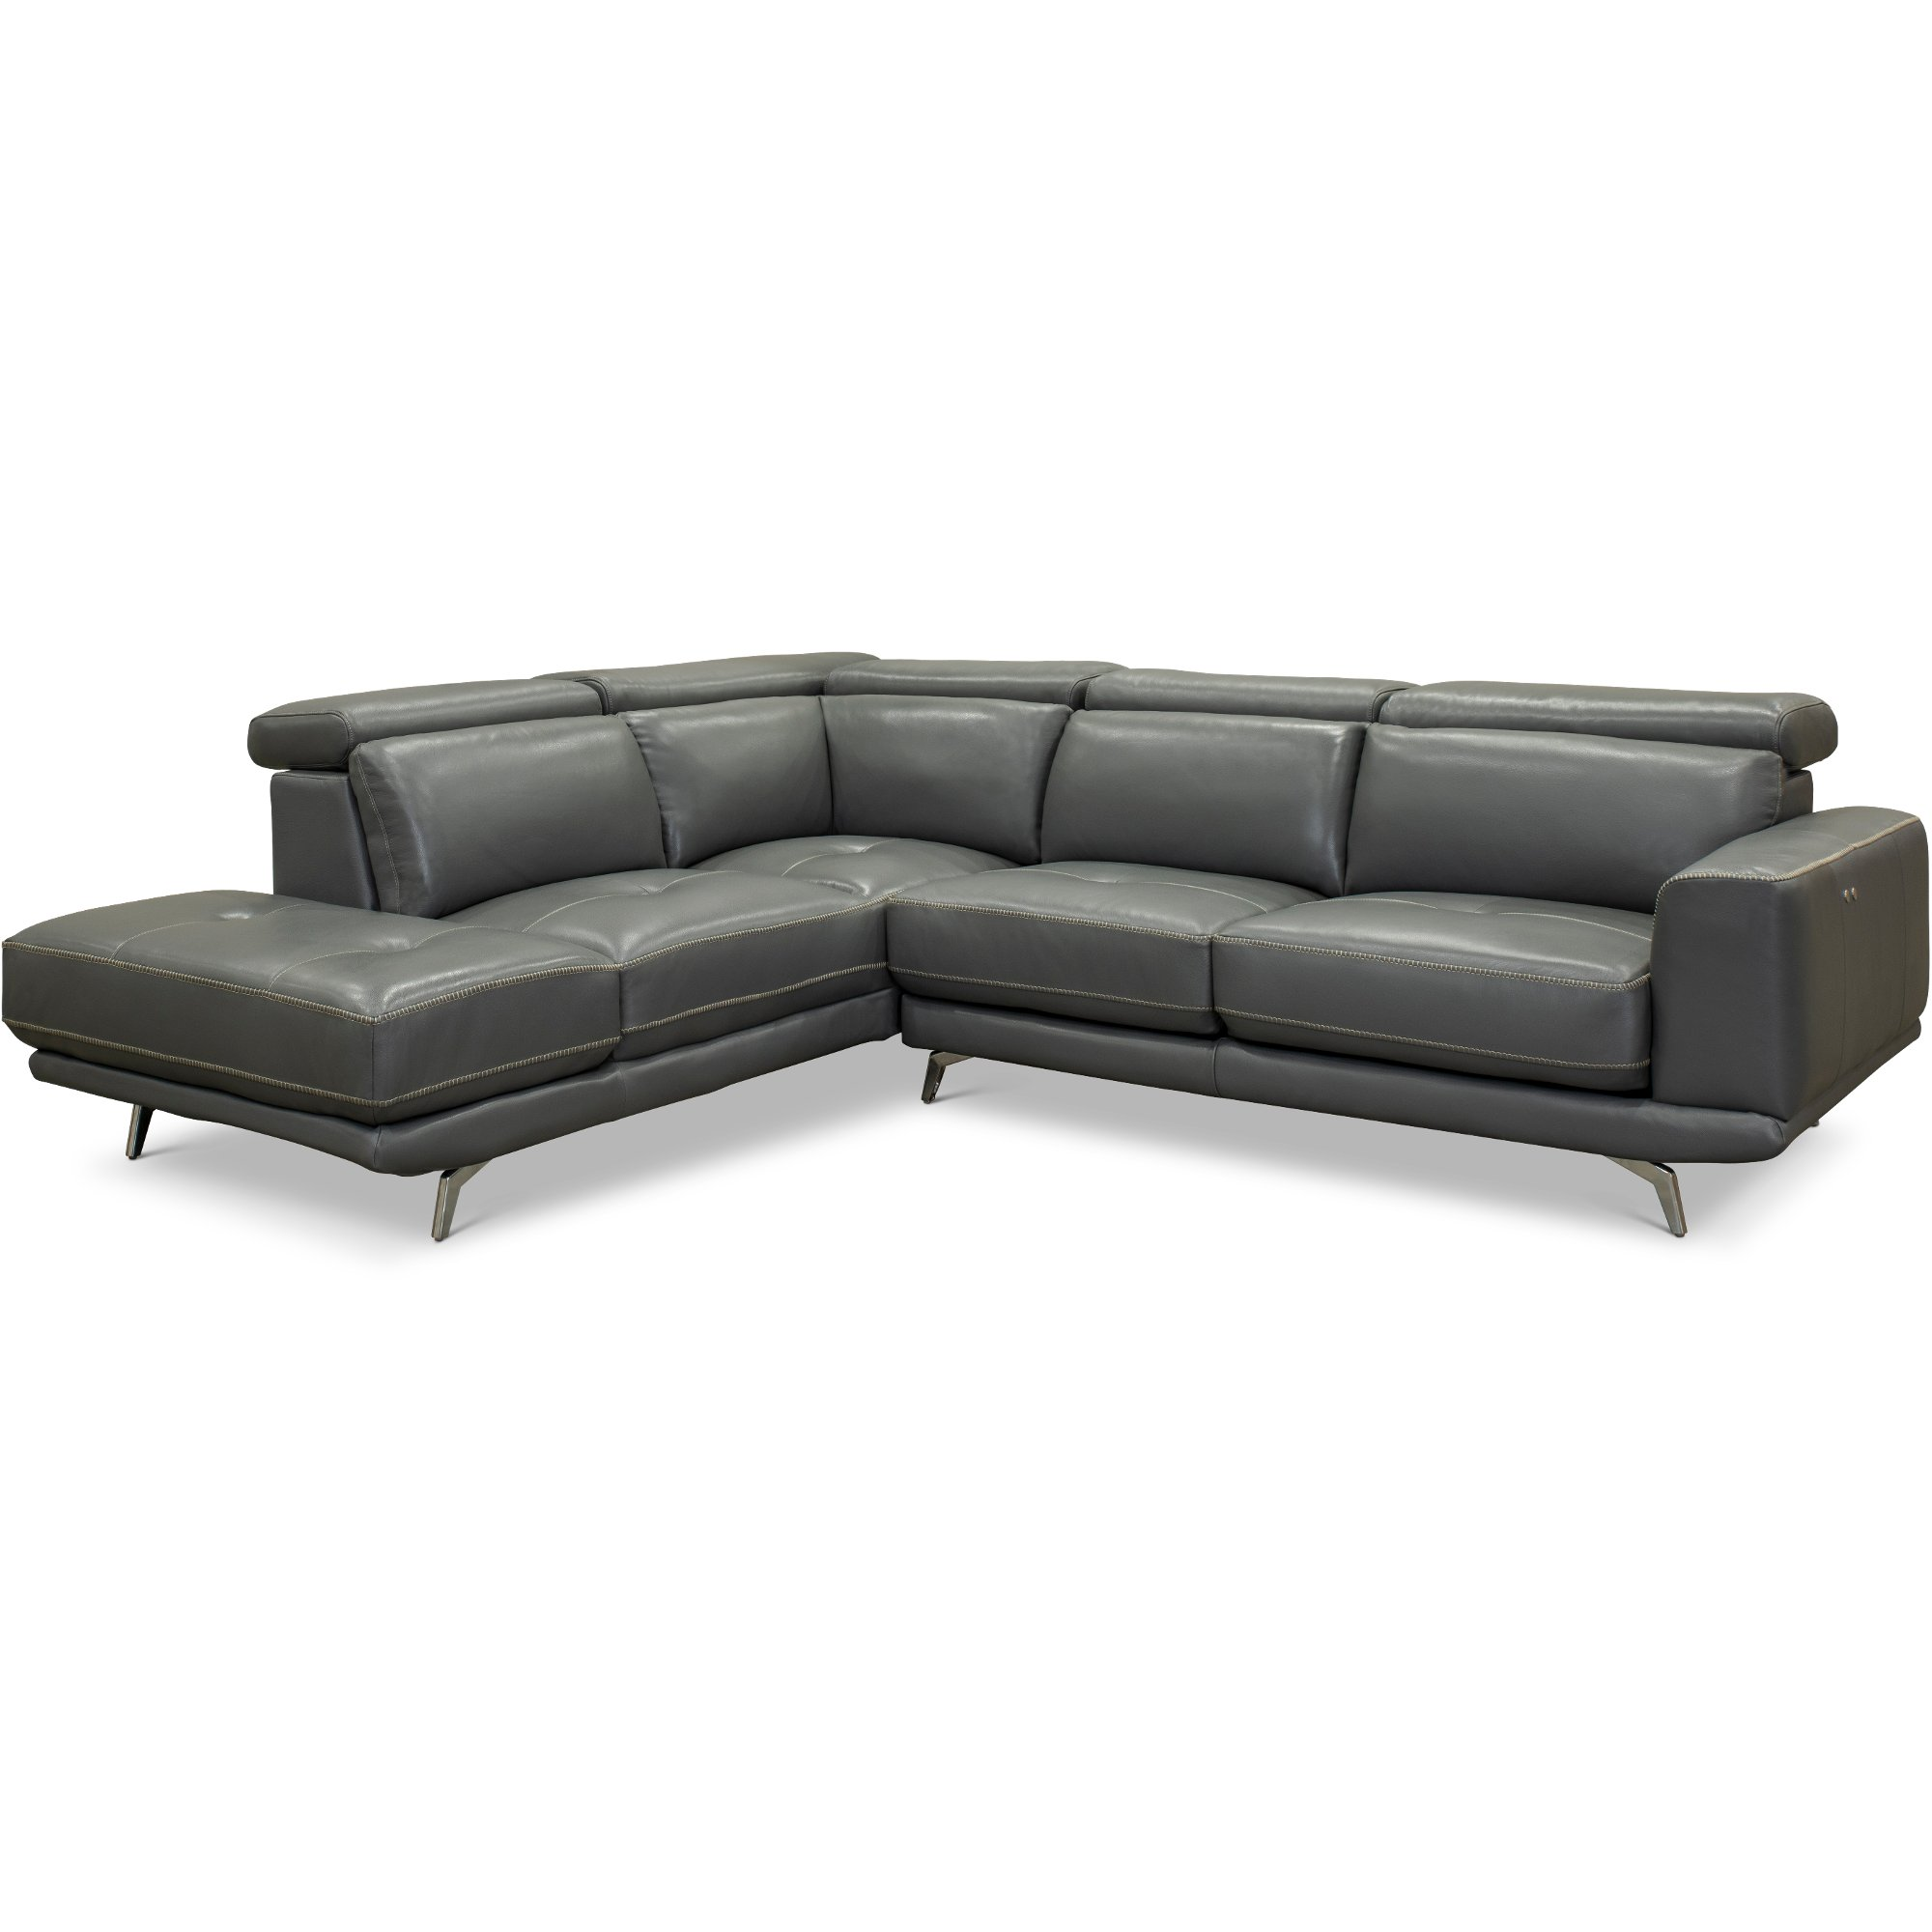 dark gray leather living room furniture paint colours match power reclining sectional sofa with left chaise baron rc willey store